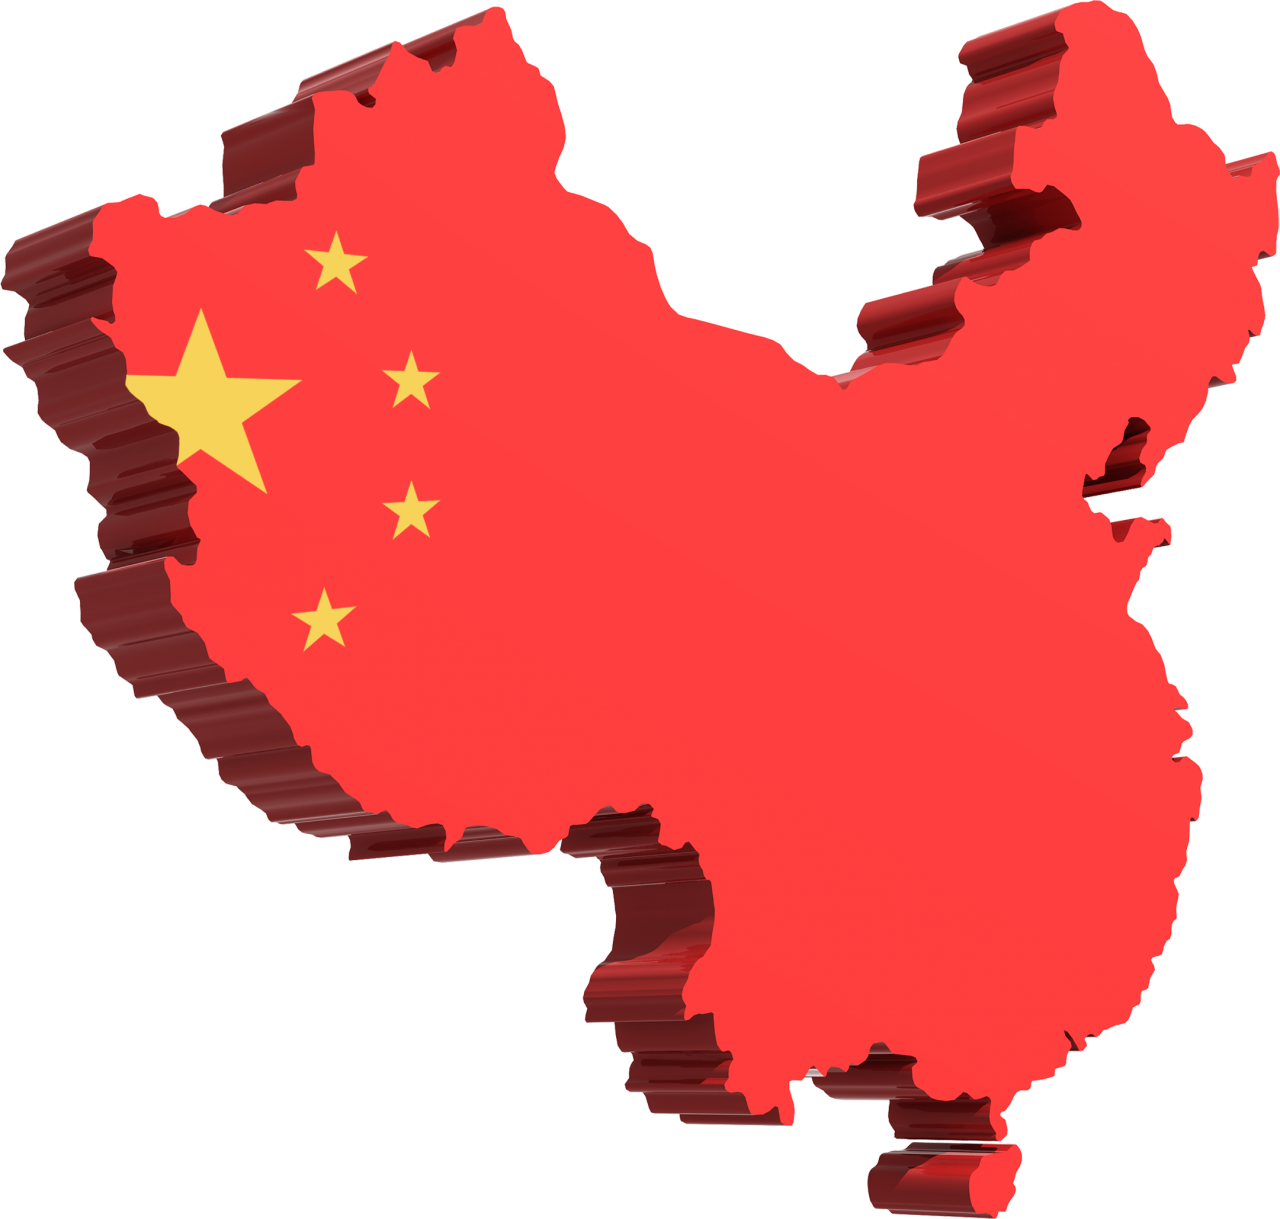 Map of China/Flag of China PNG Image - PurePNG | Free transparent ...